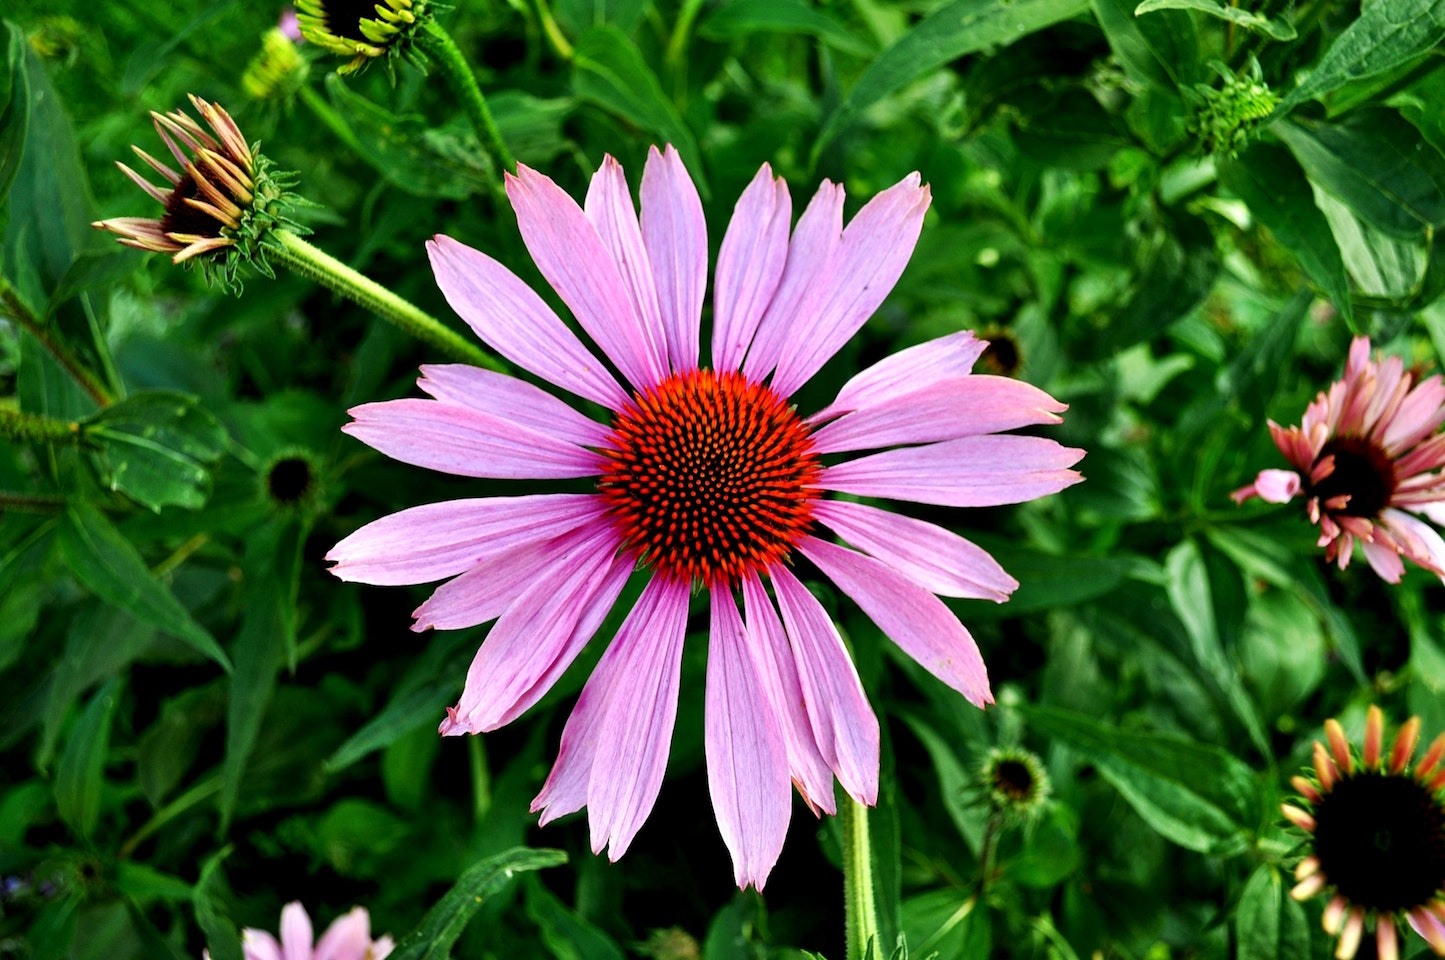 purple echinacea flower with red-purple centre against green foliage